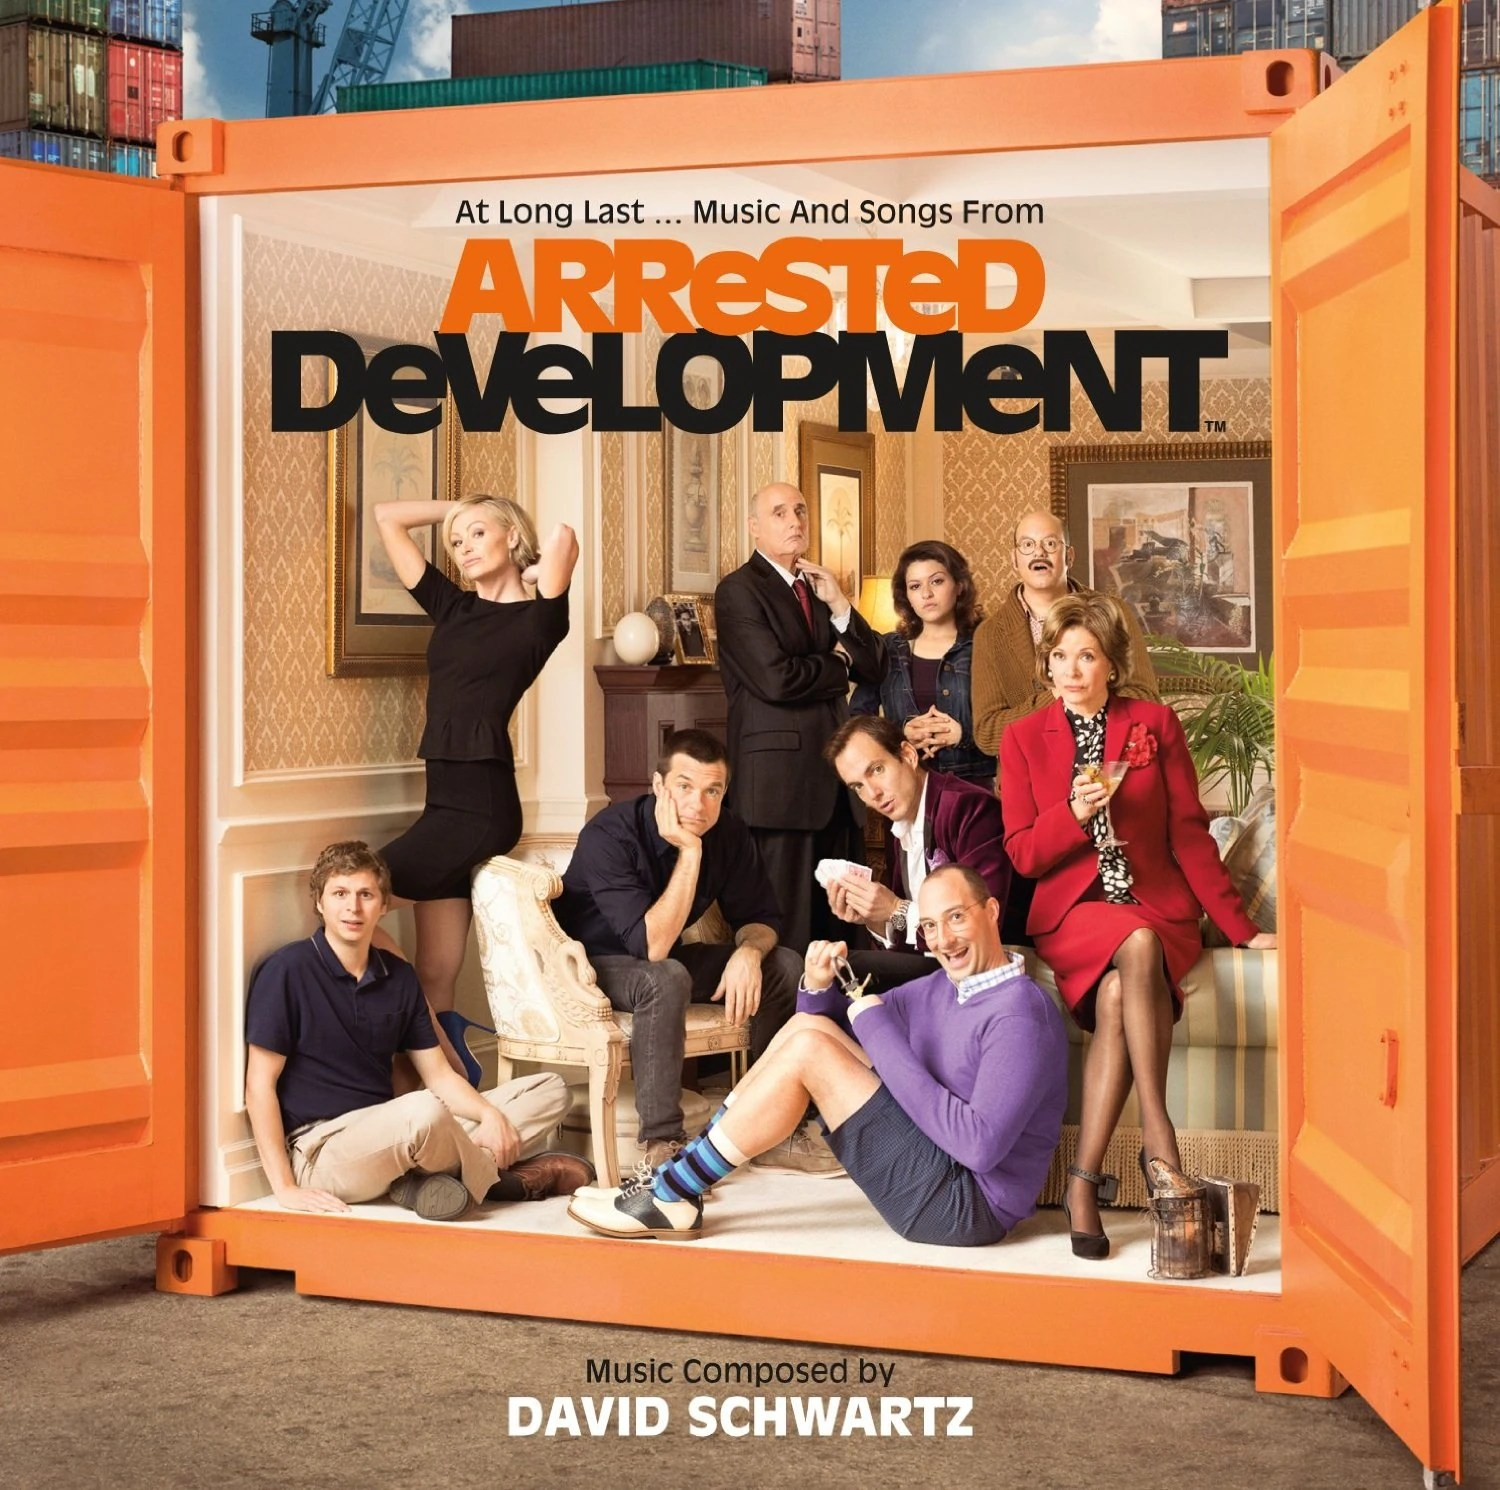 At Long Last Music And Songs From Arrested Development